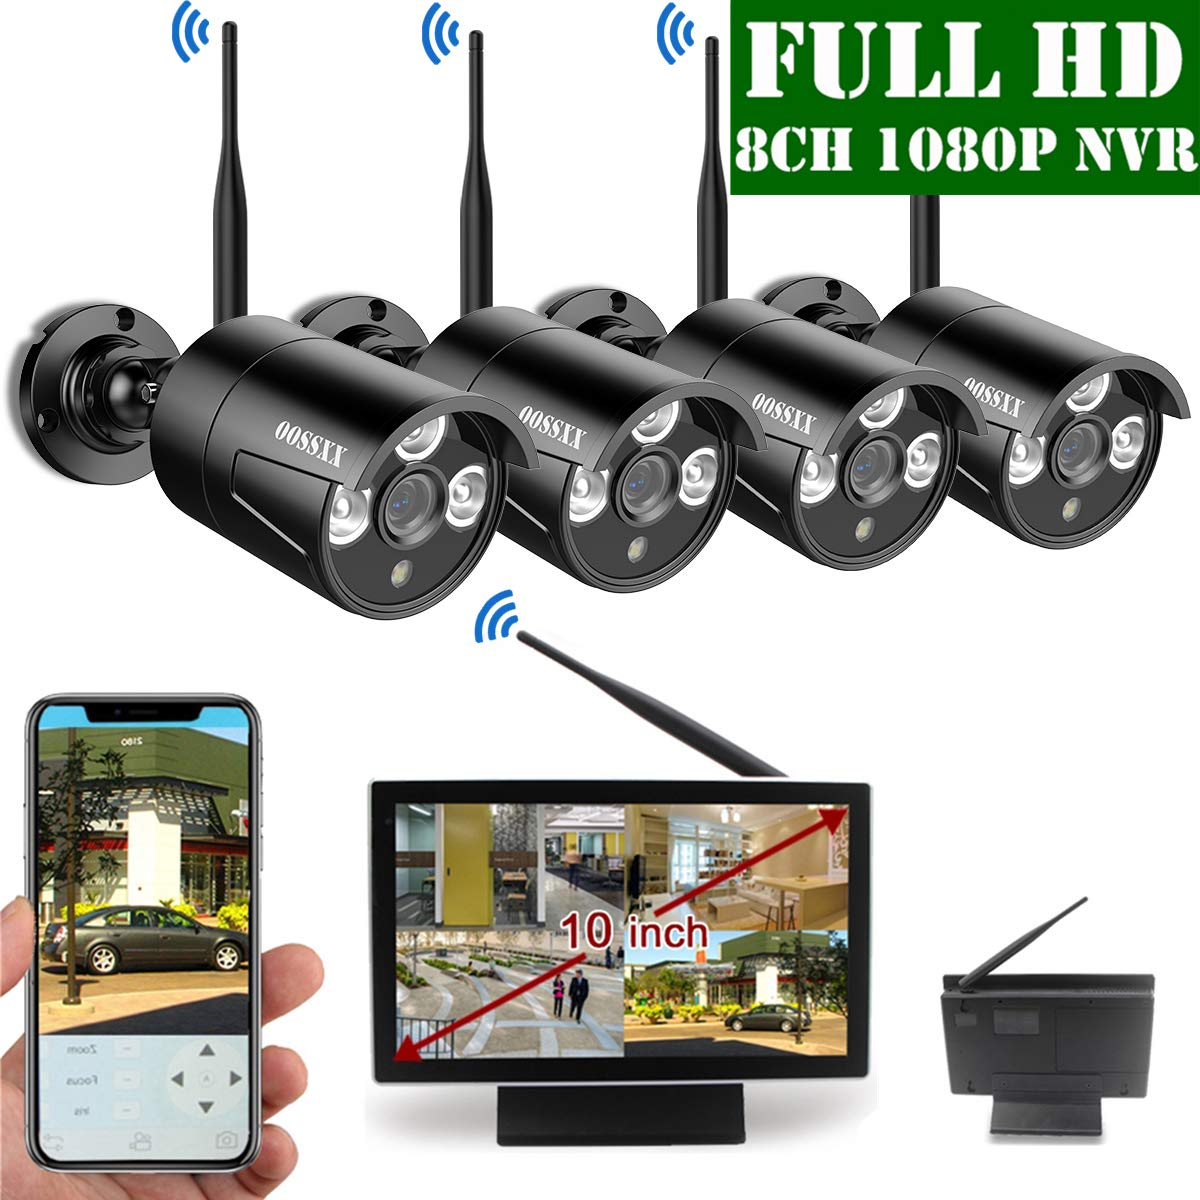 【2019 Update】 10 inch Screen HD 1080P 8-Channel Outdoor Wireless Security Camera System,4pcs 1080P Wireless IP67 Weatherproof IP Cameras,70FT Night Vision,P2P,App, NO Hard Drive by OOSSXX